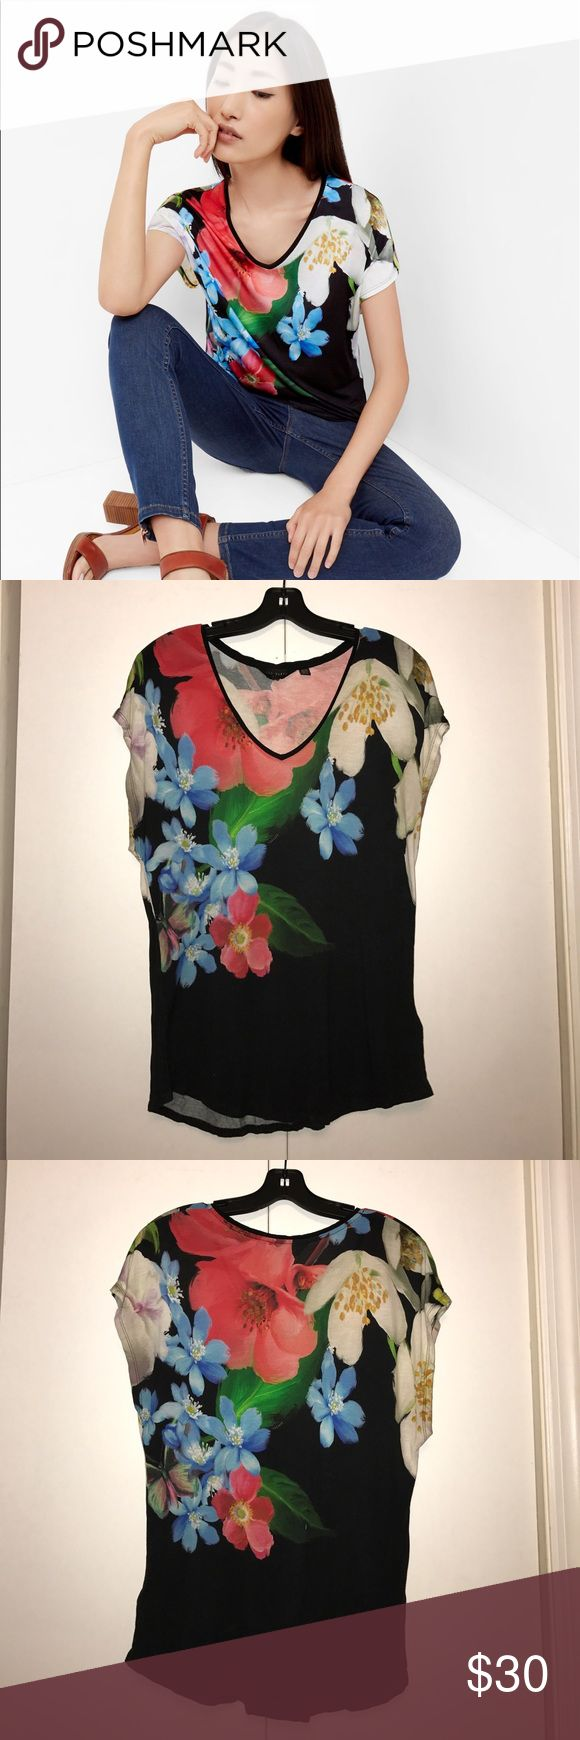 Ted Baker Forget Me Not tee Ted Baker v neck tee. Looks great with denim and skirts. Features signature Ted Baker florals! Ted Baker Tops Tees - Short Sleeve